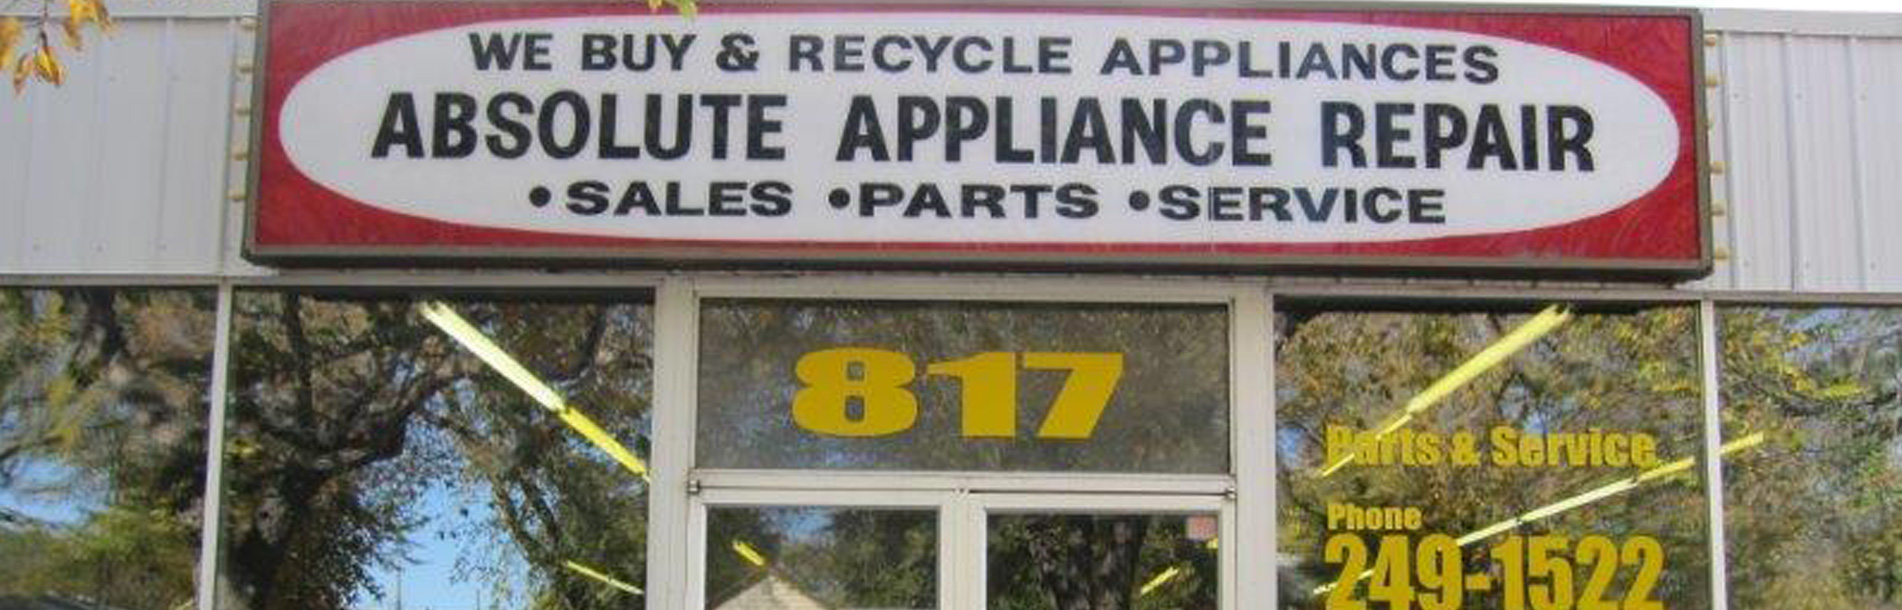 Absolute Appliance Repair